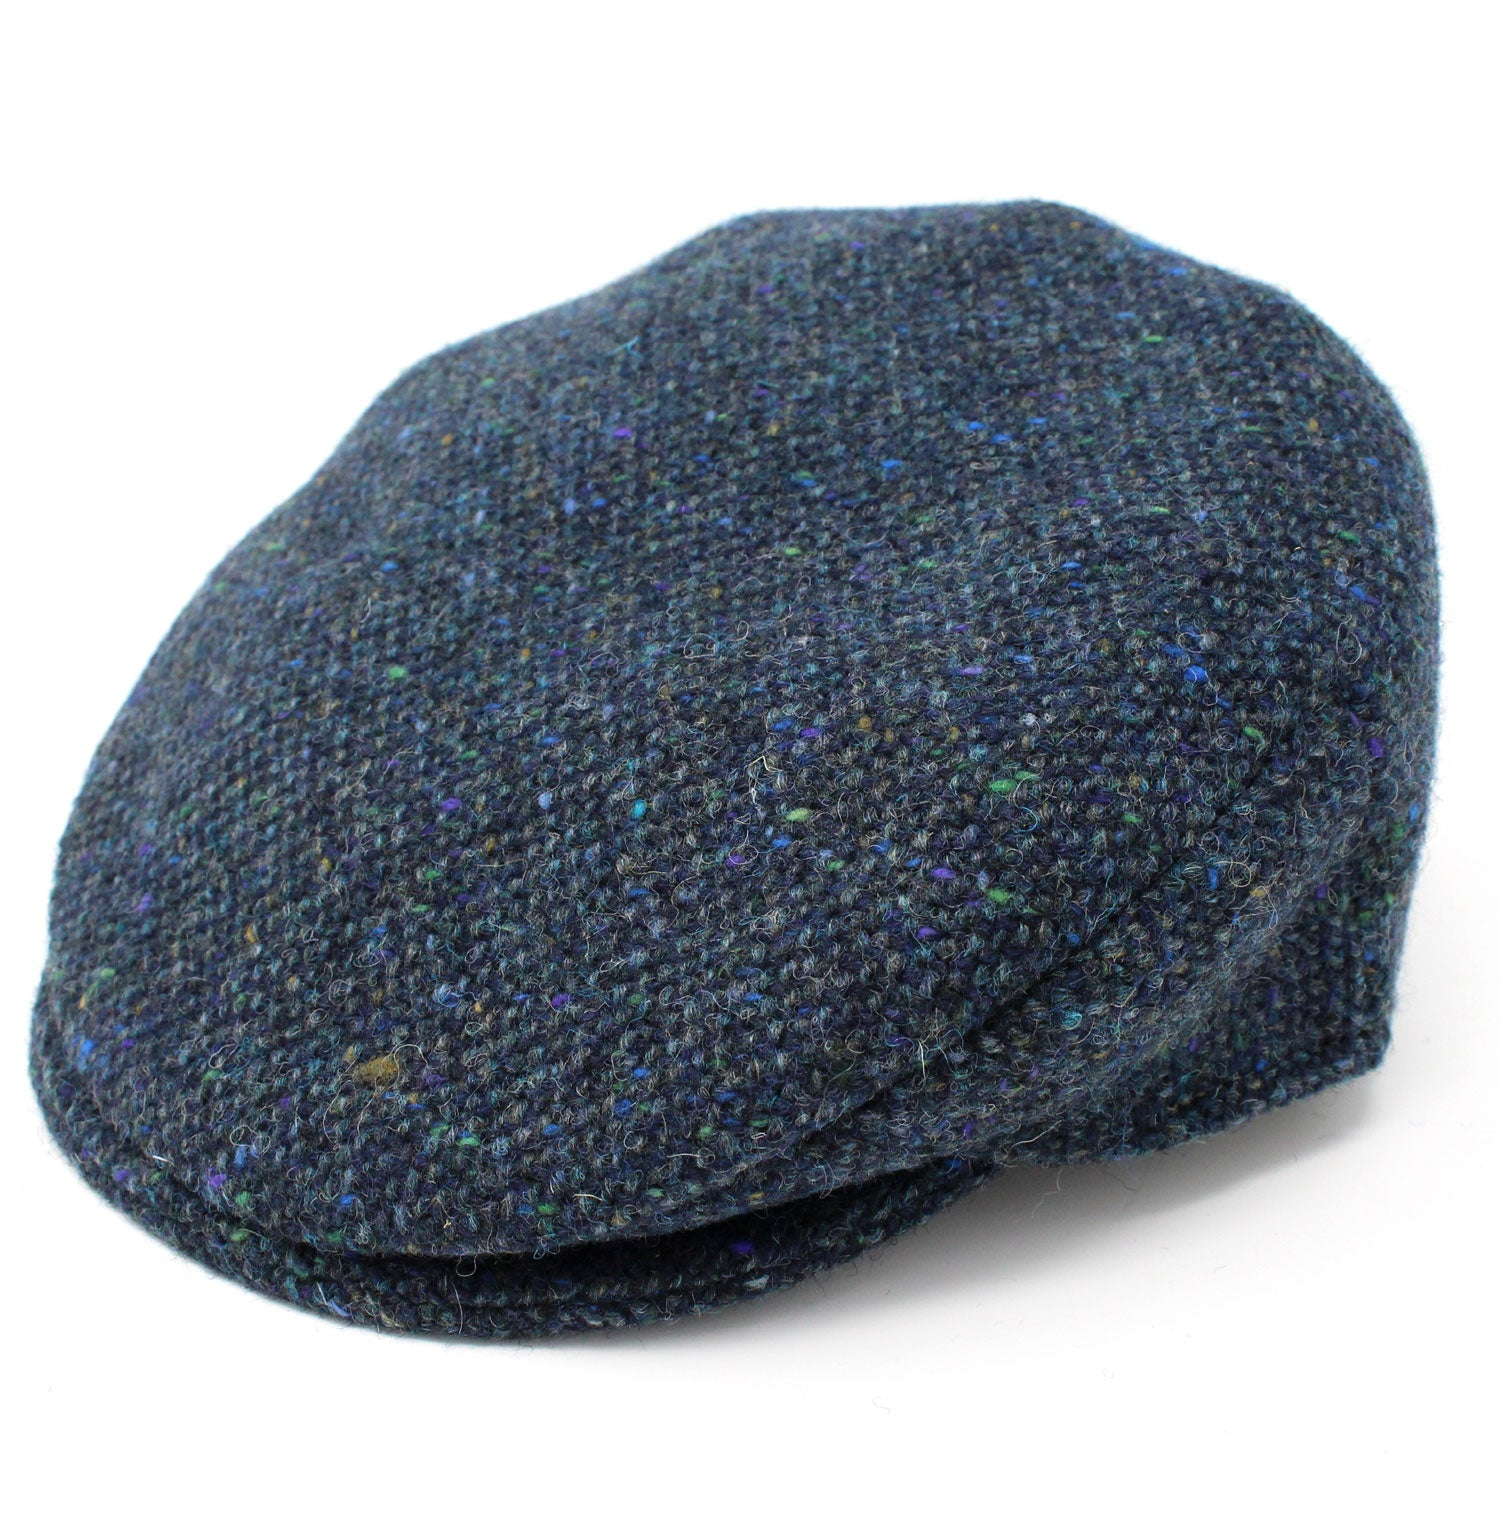 Hanna Children's Tweed Flat Cap | Navy Salt and Pepper